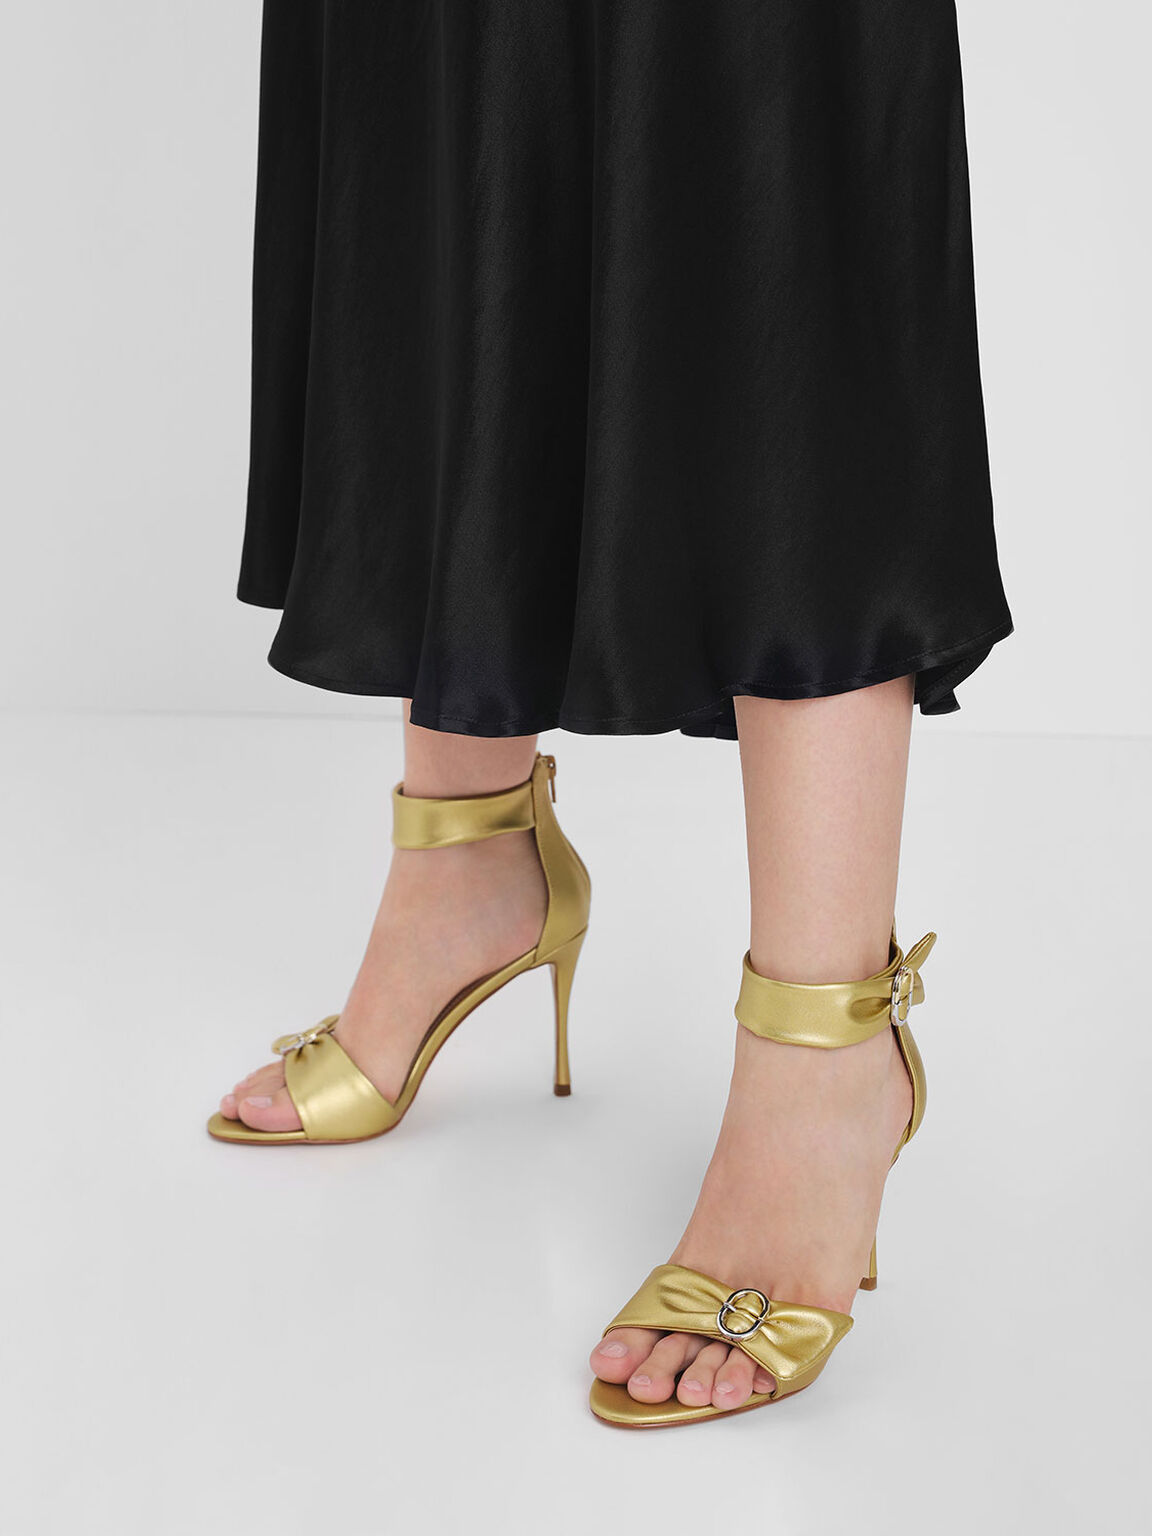 Ruched Two-Tone Buckle Stiletto Heels, Gold, hi-res